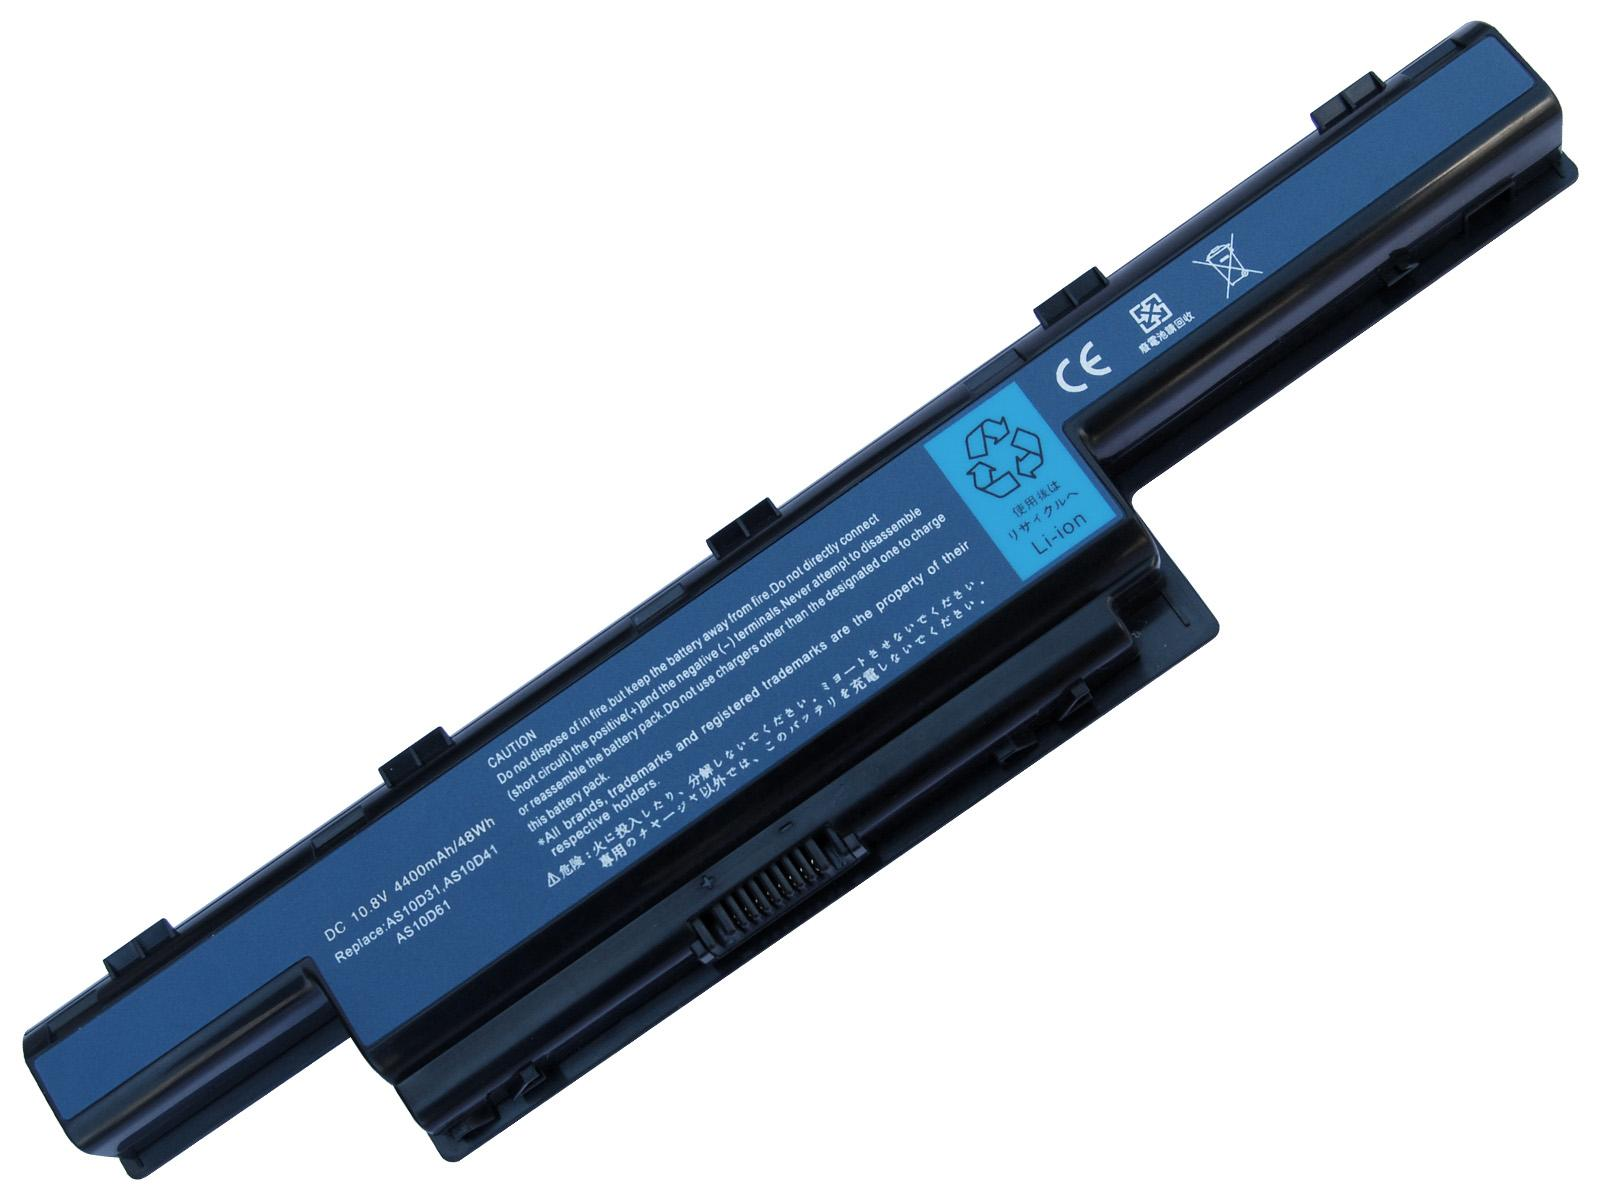 Usine AAAA + 5200mAh Batterie Batterie 6cell Batterie 31CR19 / 652 AS10D31 pour